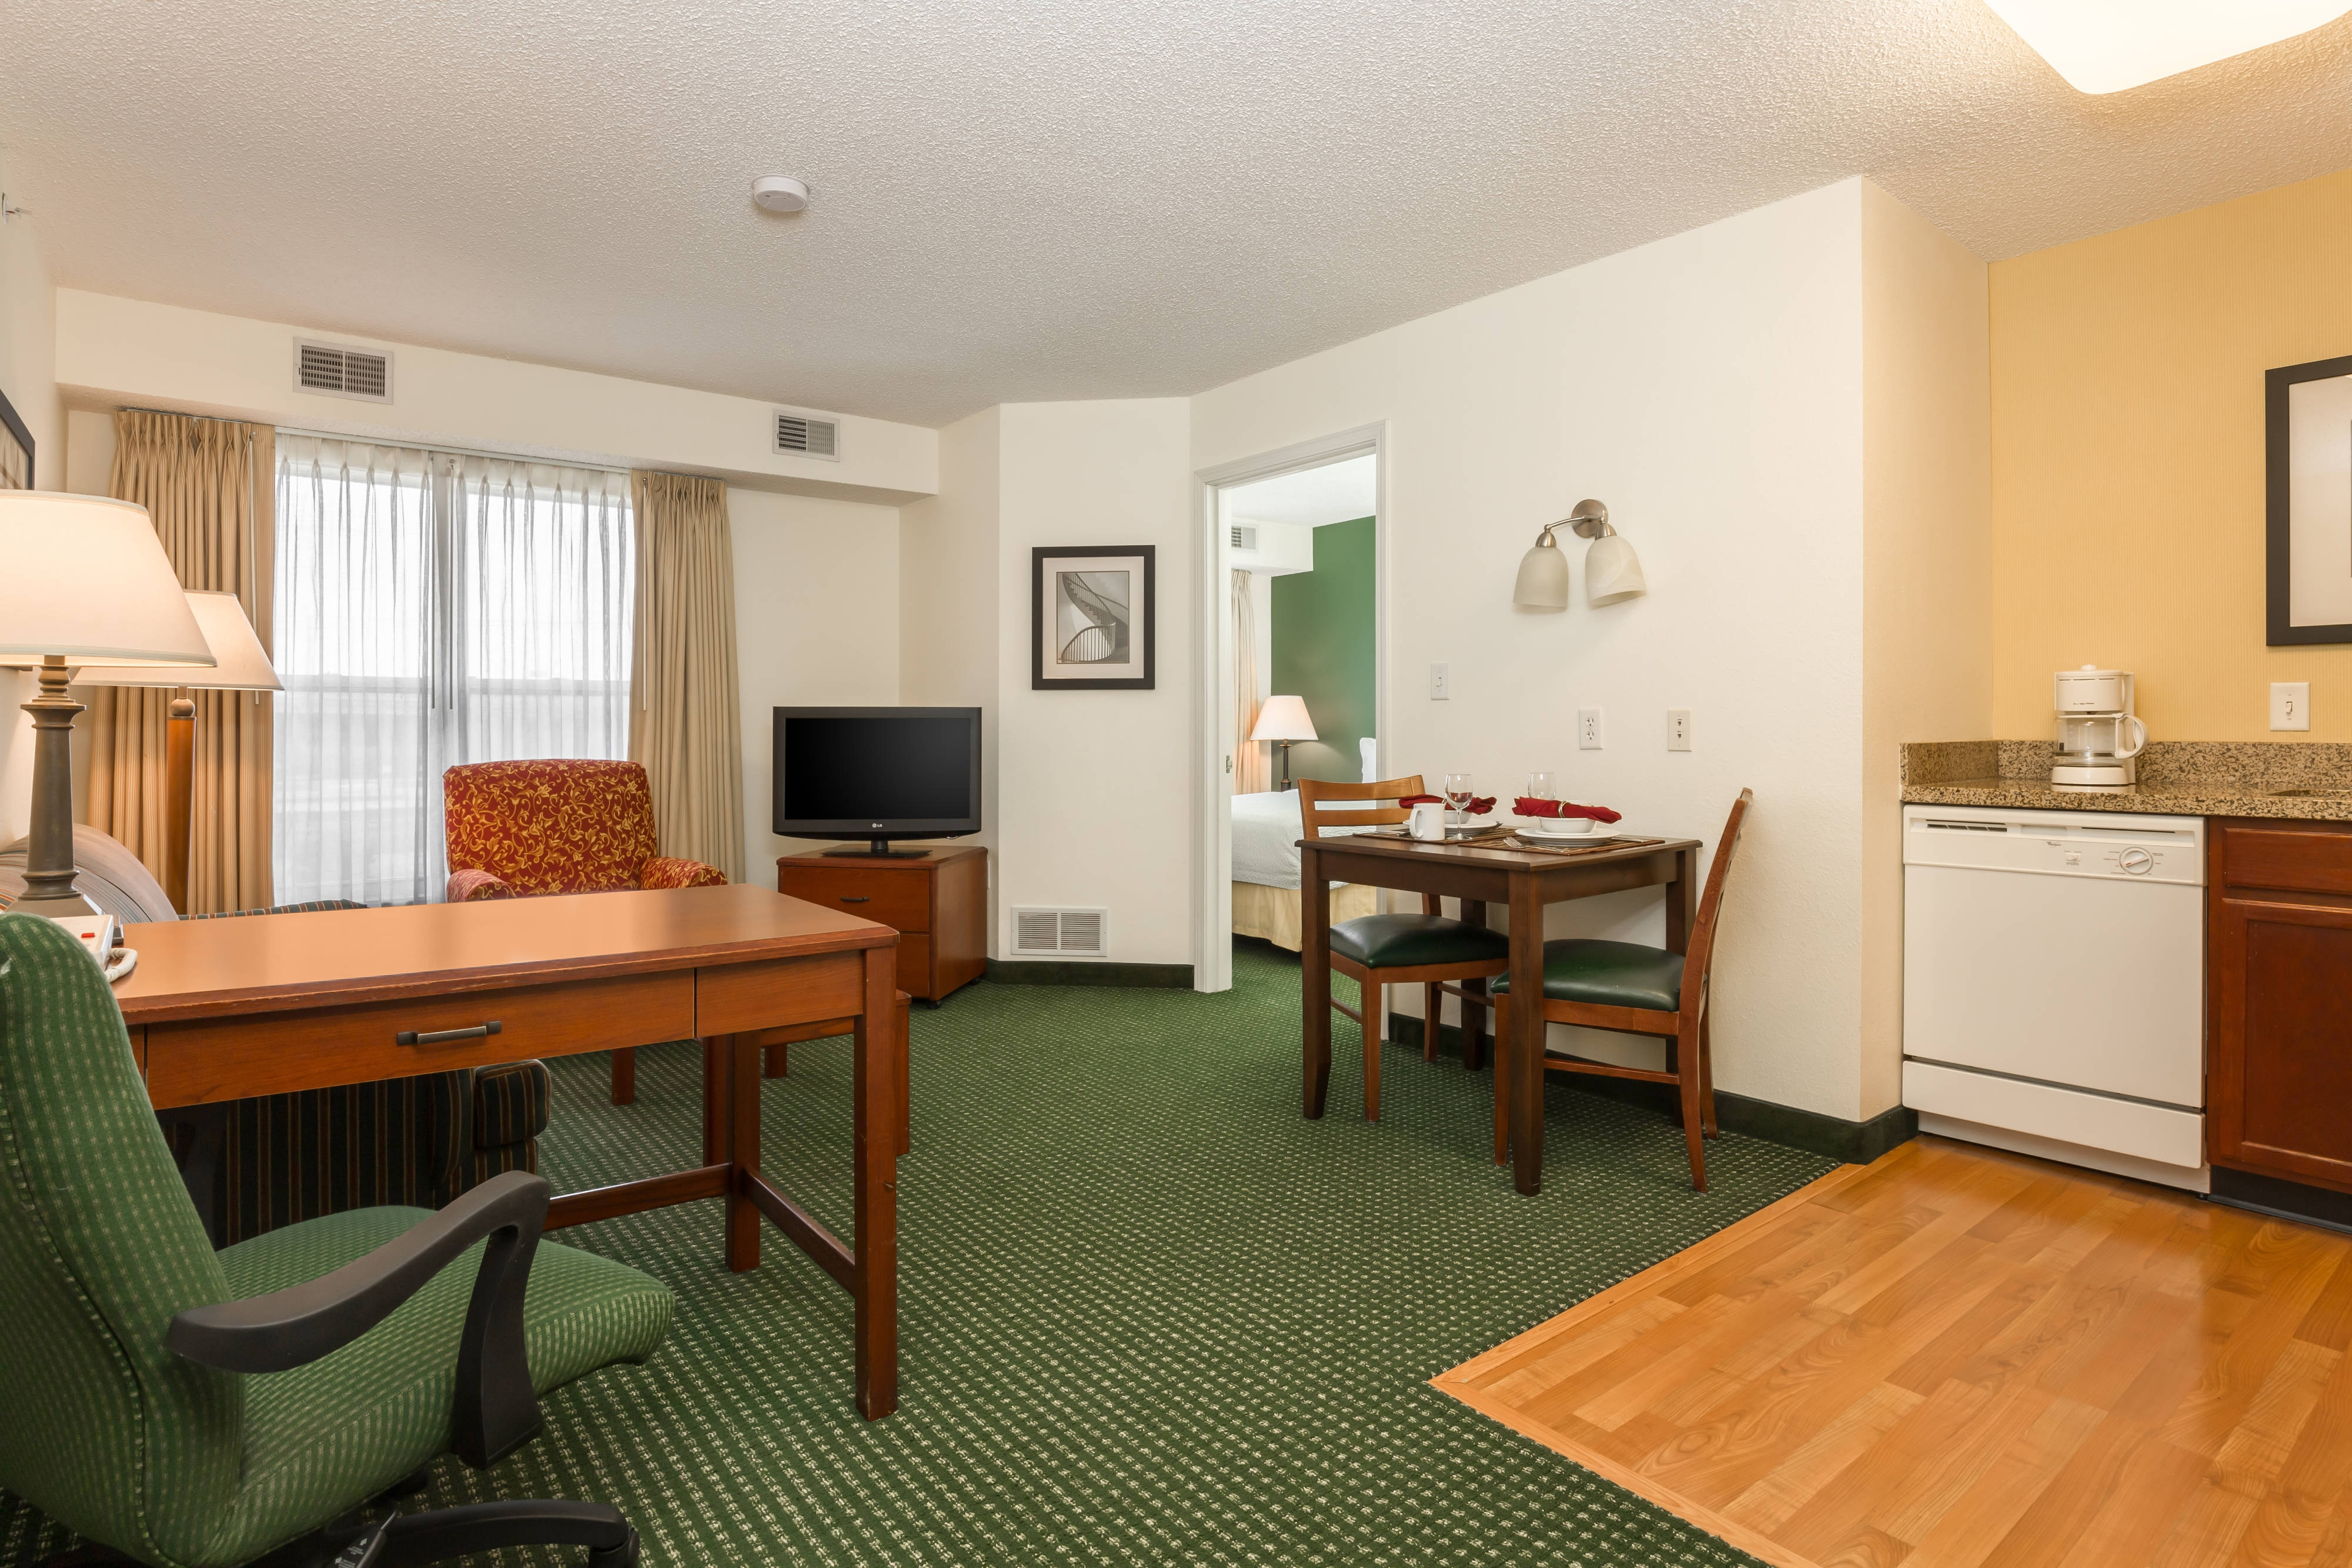 Extended Stay Hotel In Houston Residence Inn Houston Intercontinental Airport